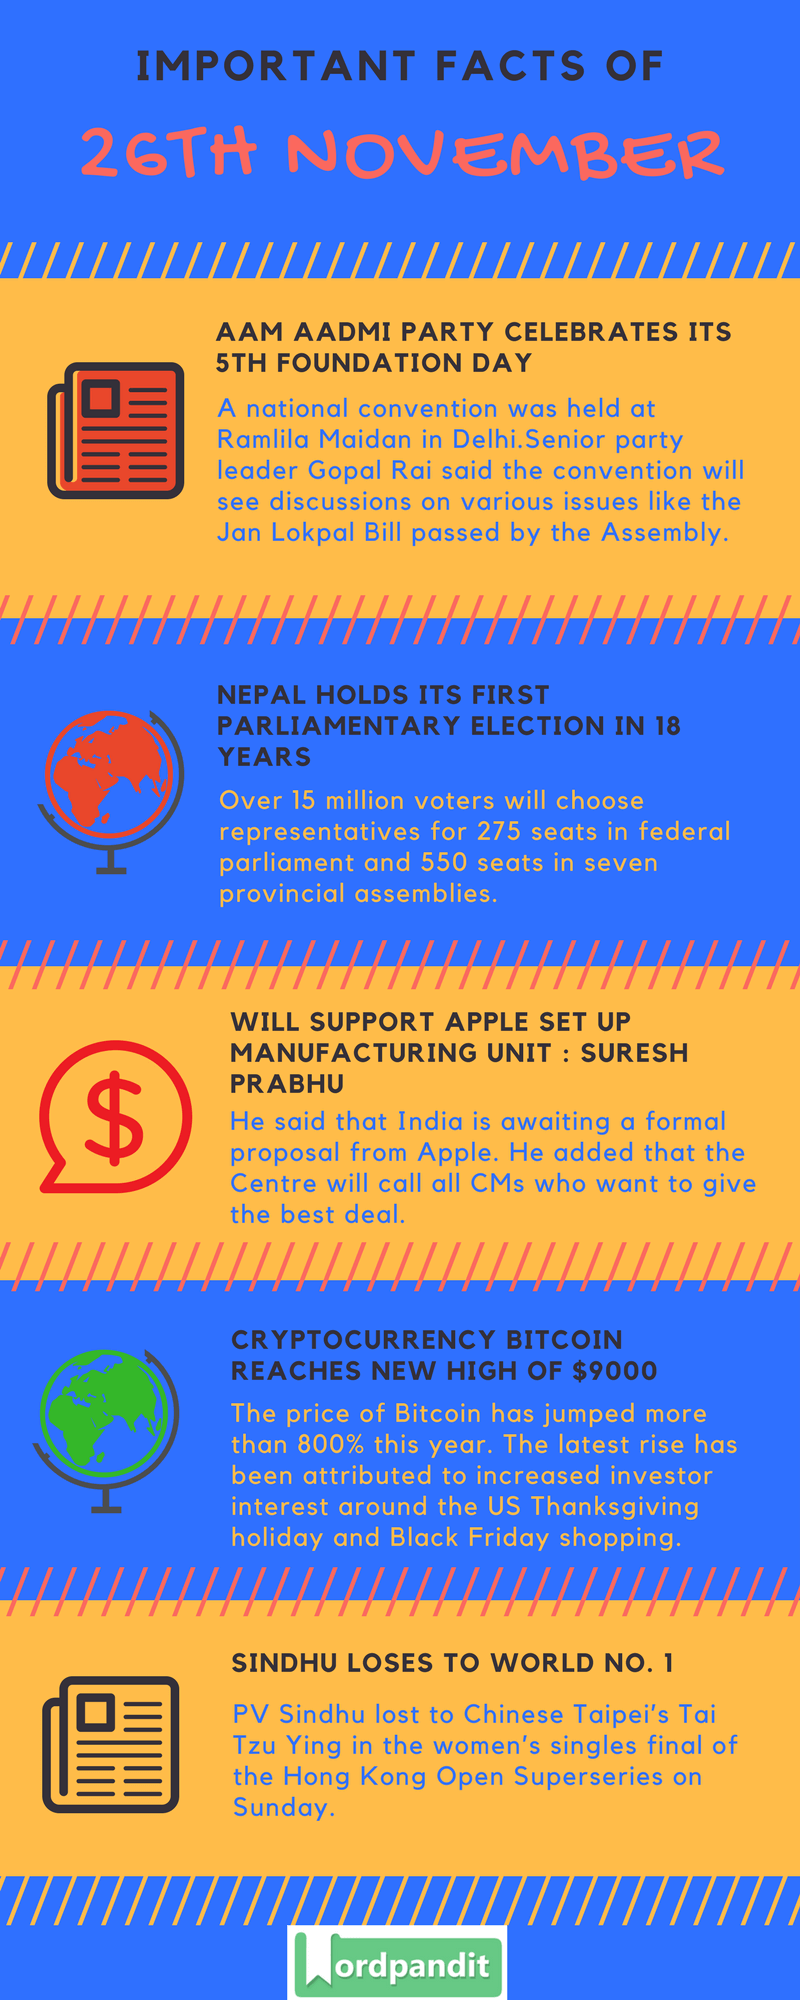 Daily-Current-Affairs-26-november-2017-Current-Affairs-Quiz-november-26-2017-Current-Affairs-Infographic